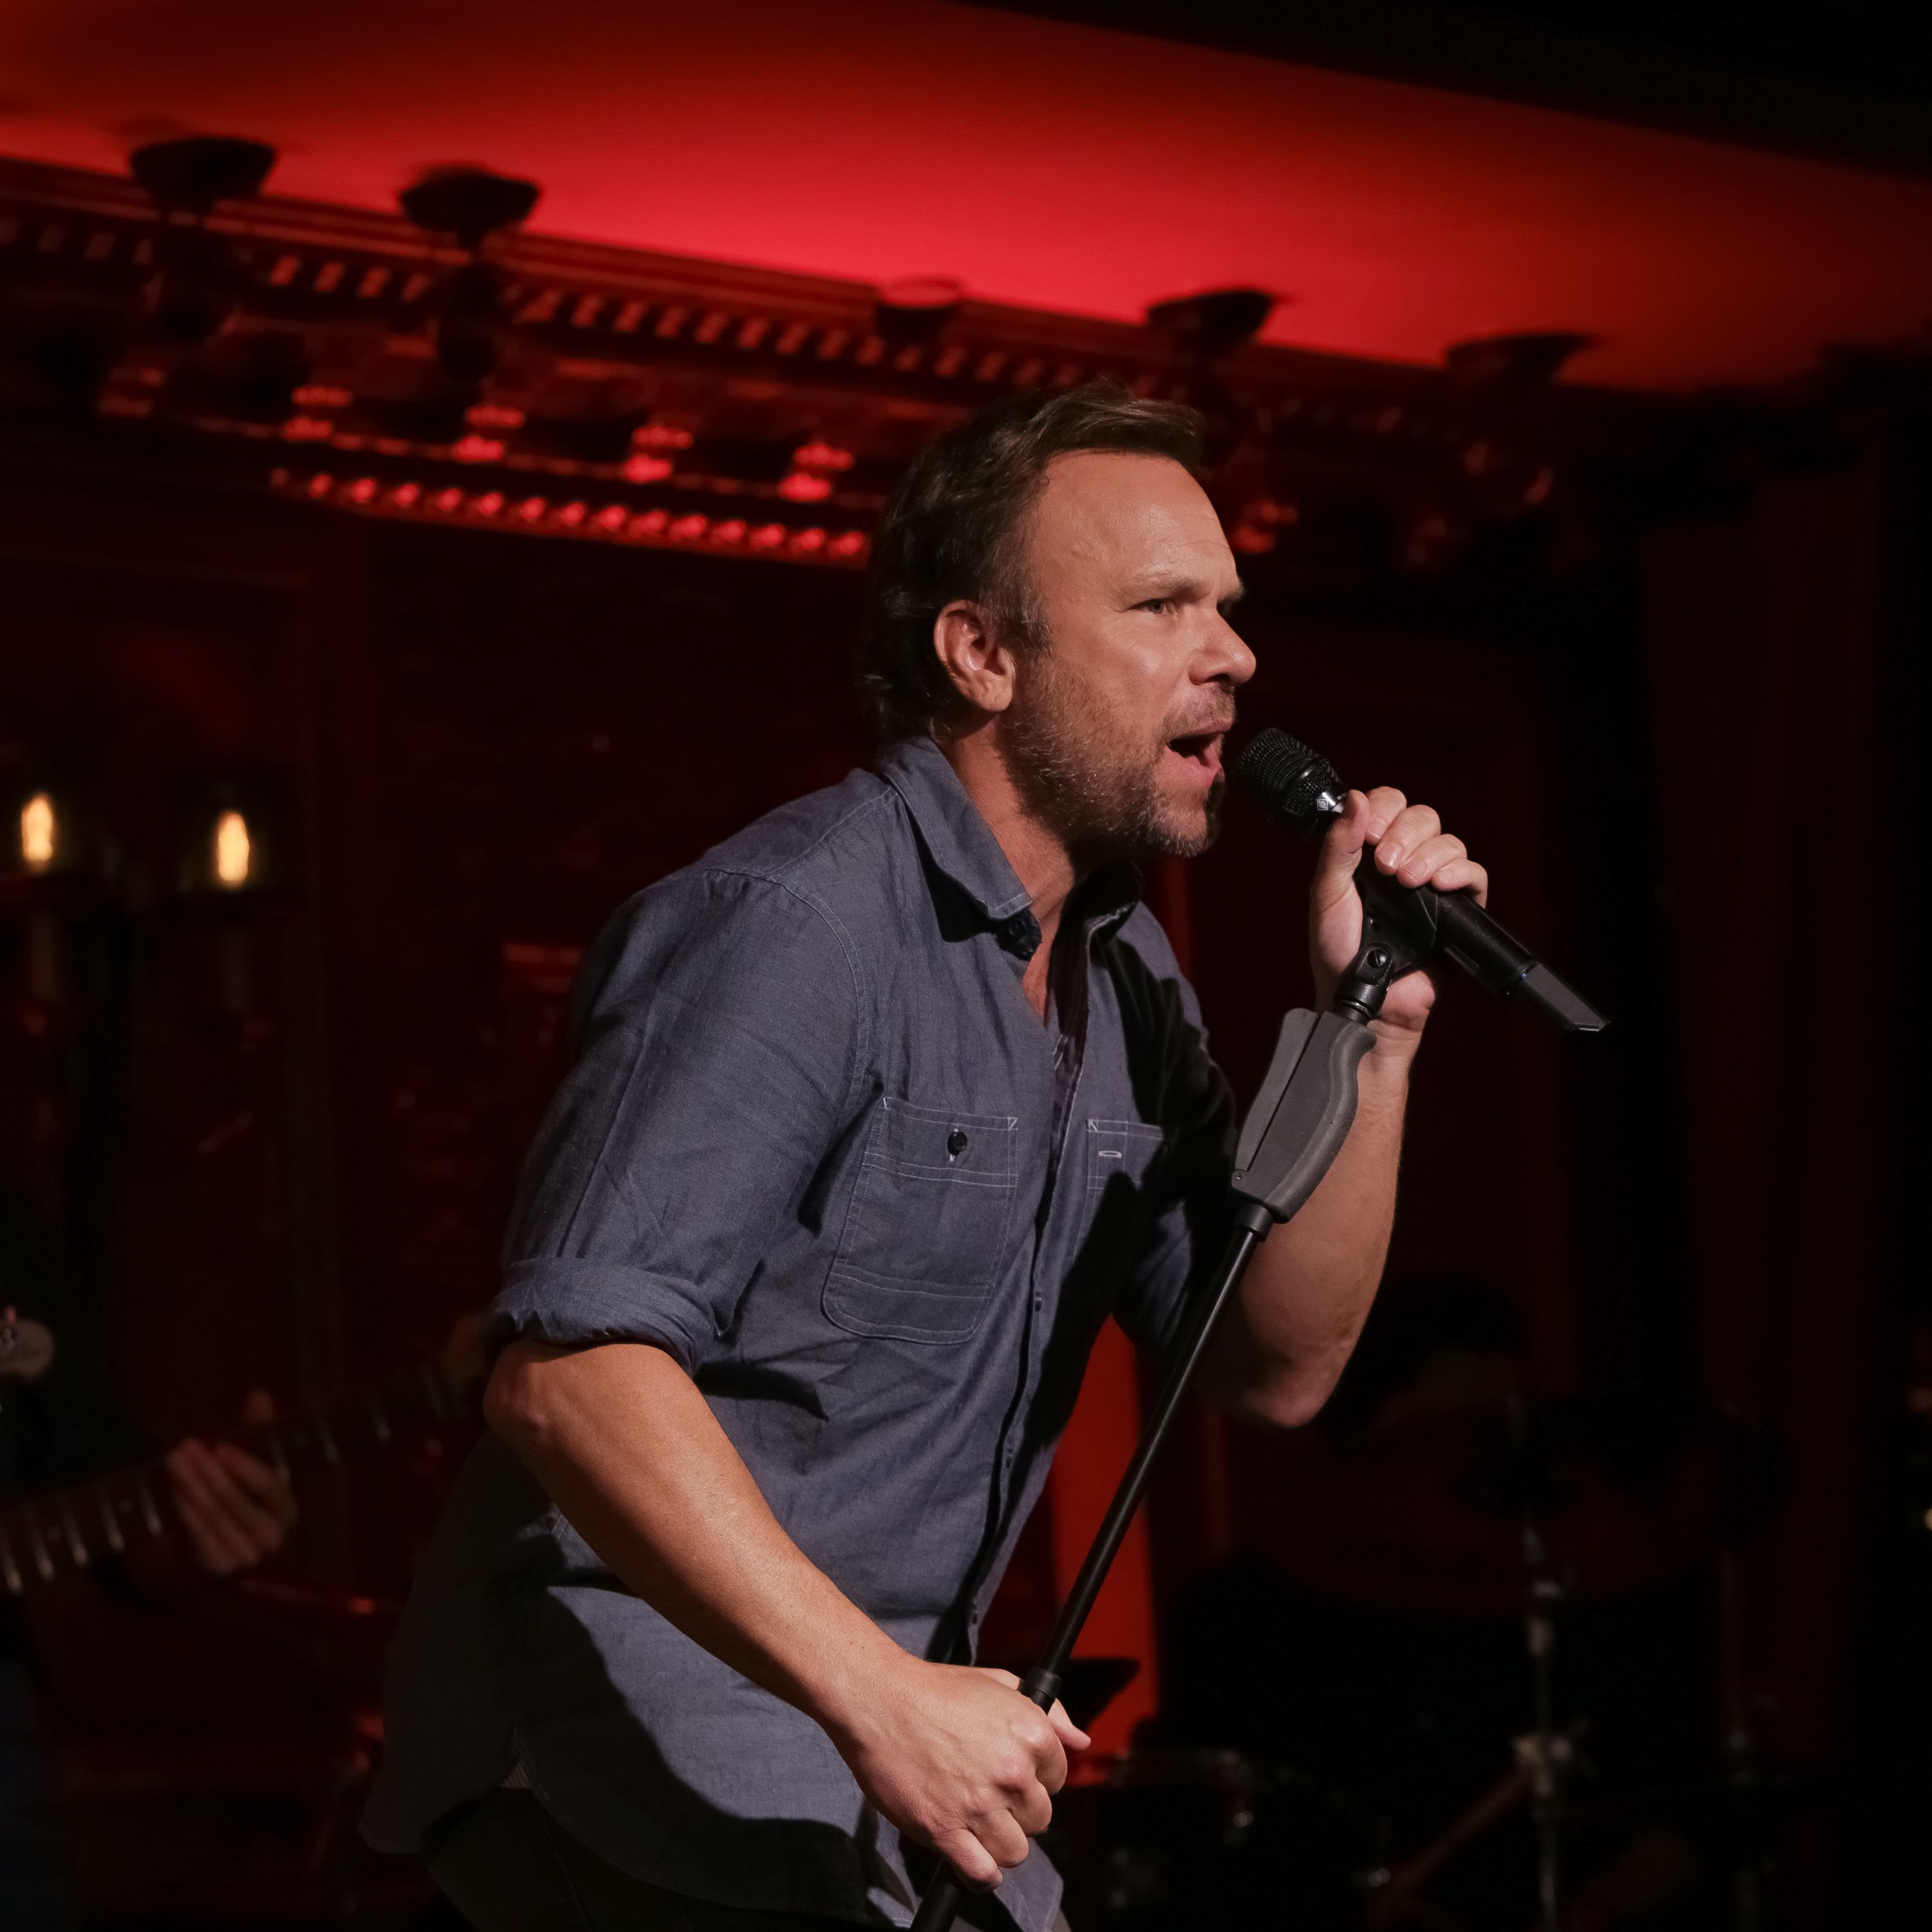 NEW YORK, NY - AUGUST 03:  Actor/singer Norbert Leo Butz performs on stage during the Feinstein's/54 Below press preview held at 54 Below on August 3, 2016 in New York City.  (Photo by Brent N. Clarke/FilmMagic)